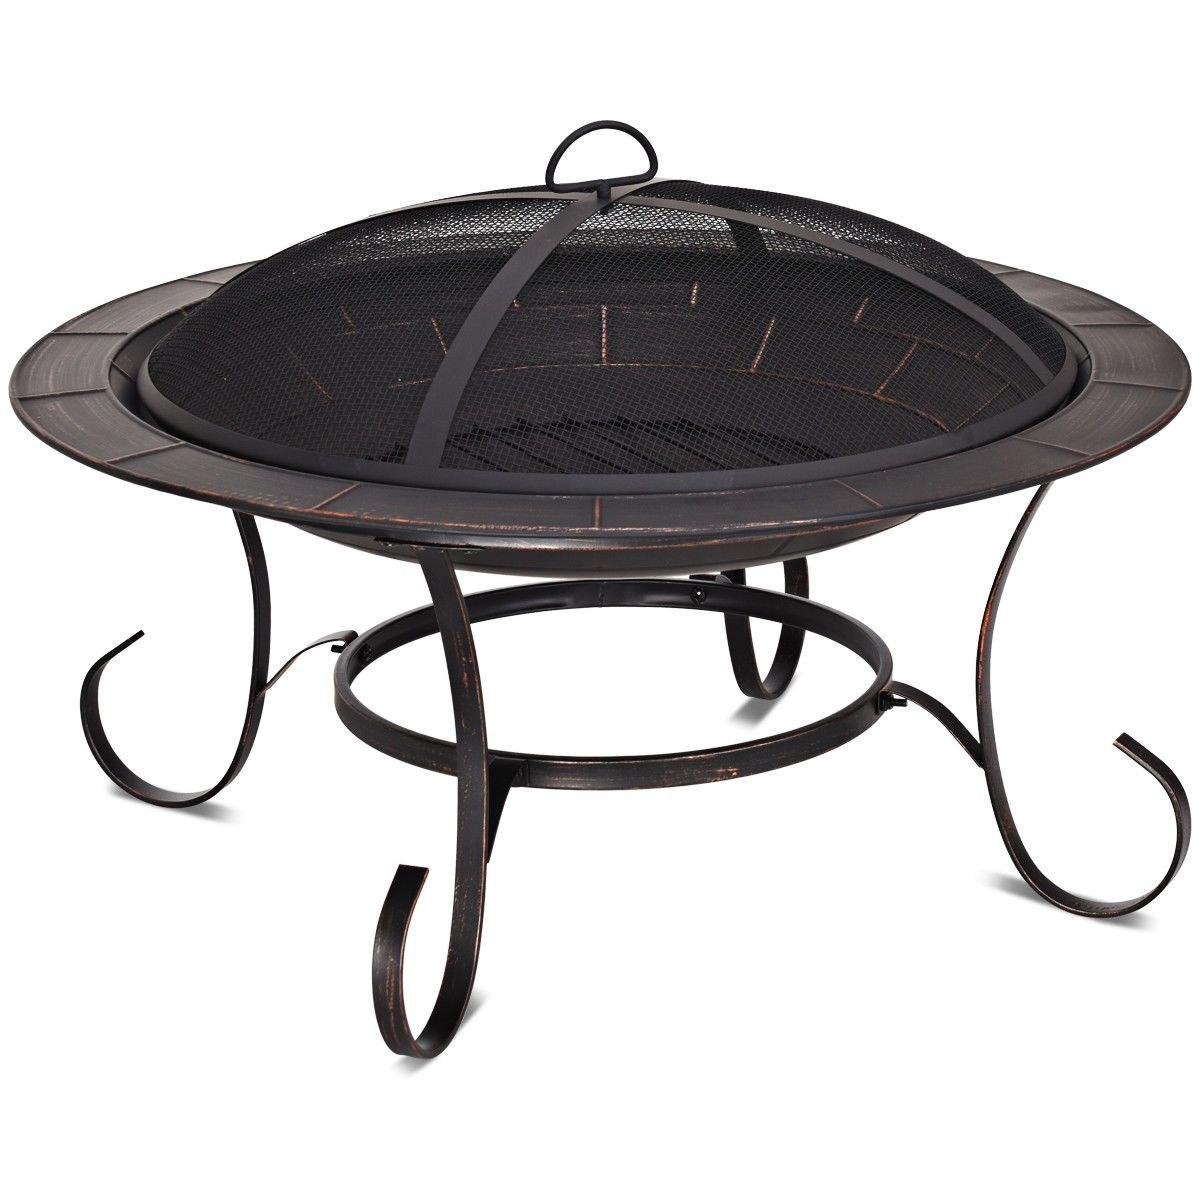 Photo of 30″ Outdoor Fire Pit BBQ Camping Firepit Heater